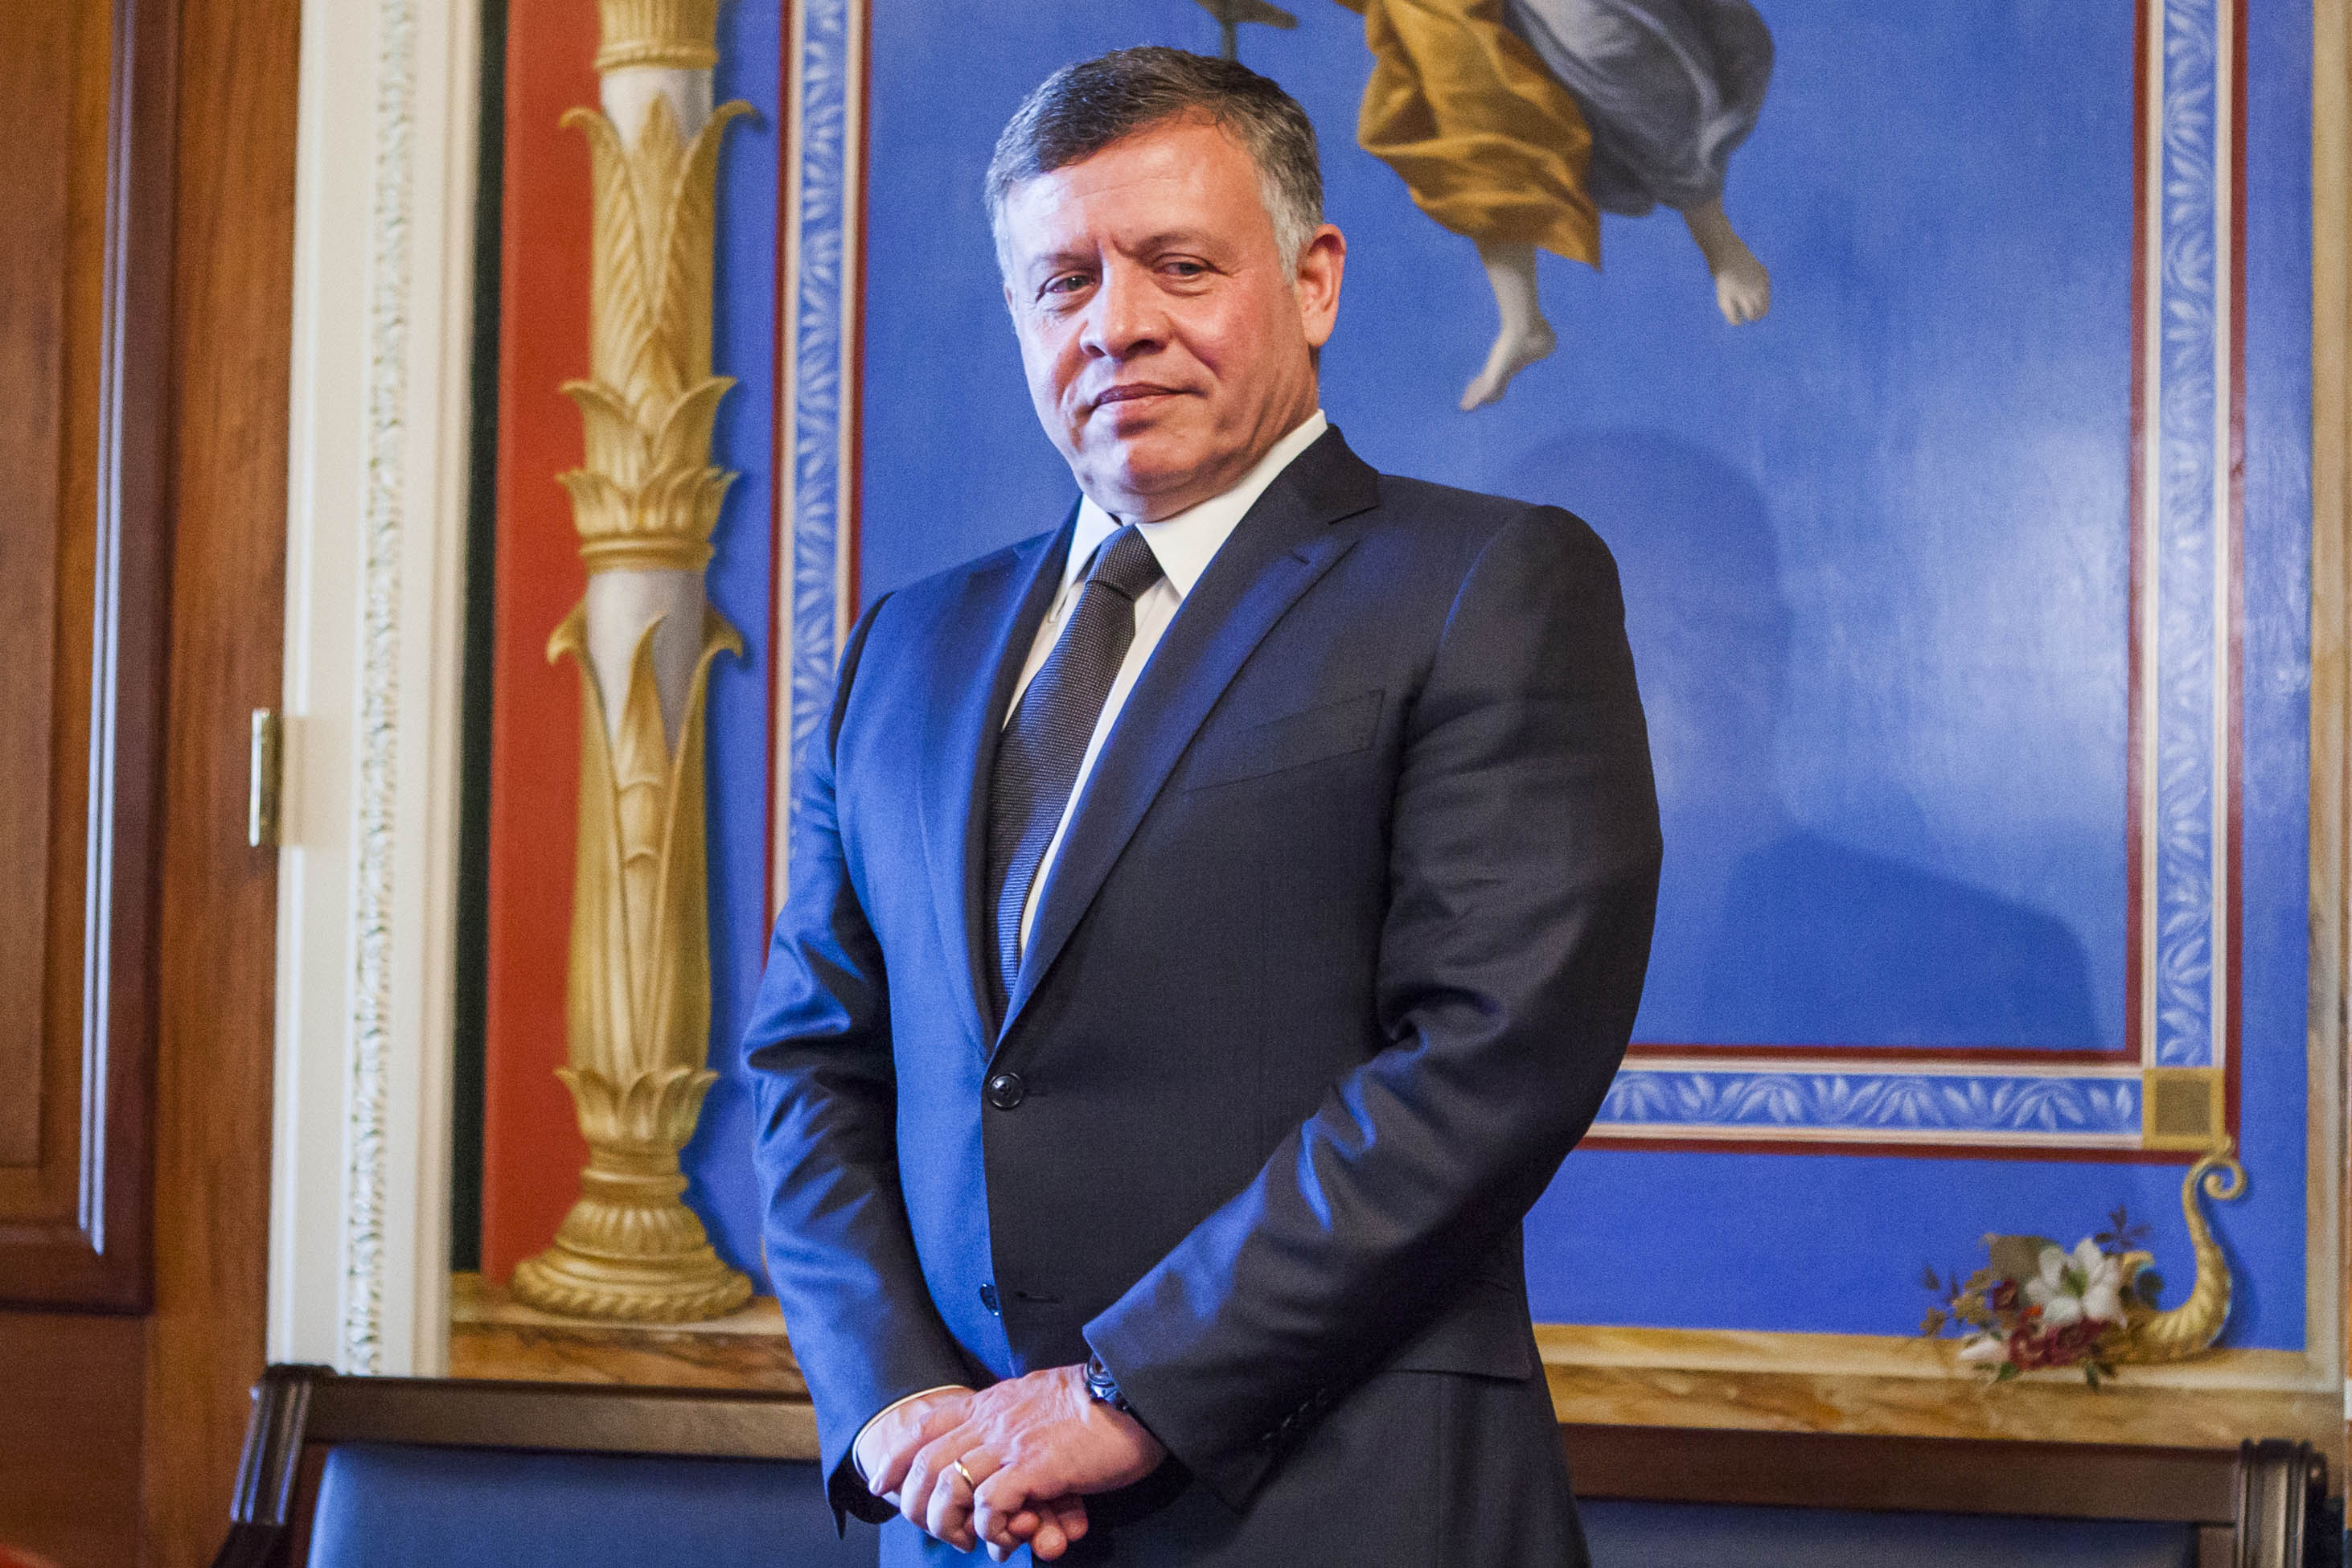 King Abdullah II of Jordan meets with members of the US Senate Appropriations Committee at the U.S. Captiol in Washington on Feb. 03, 2015.